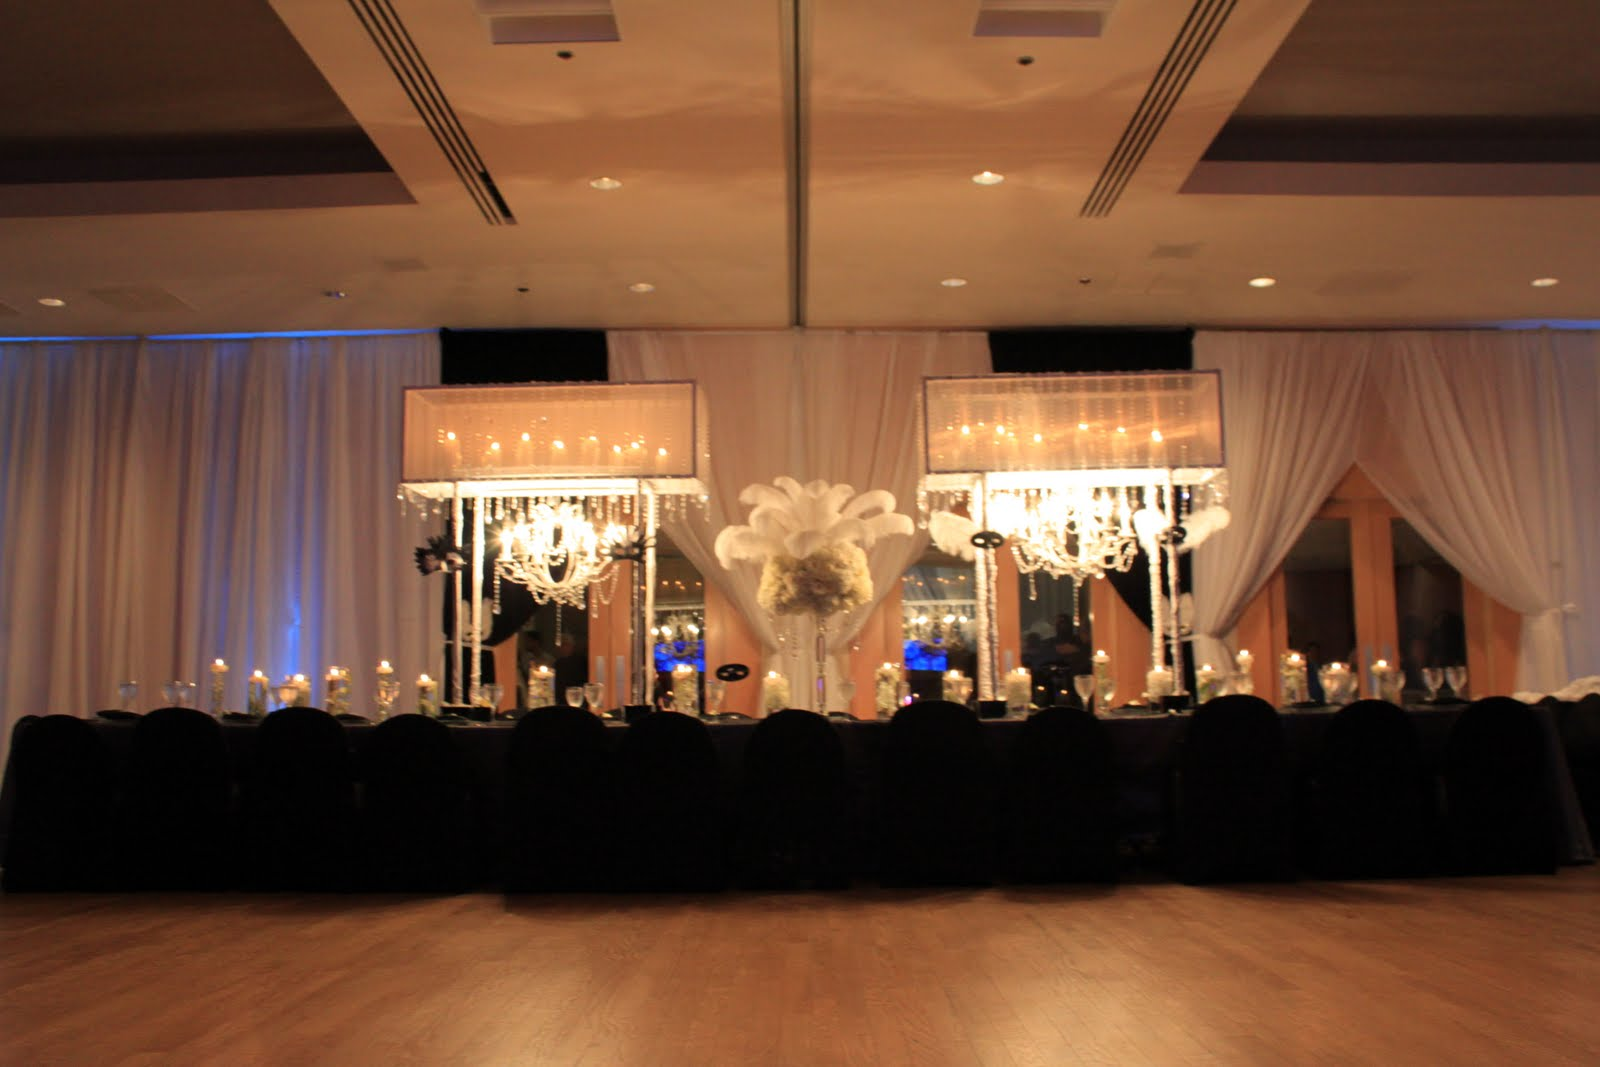 chair cover rentals dc office support for lower back weddings florist washington www davinciflorist us bar mitzvah event with our flowers lighting drapings table cloth lounge and spandex covers